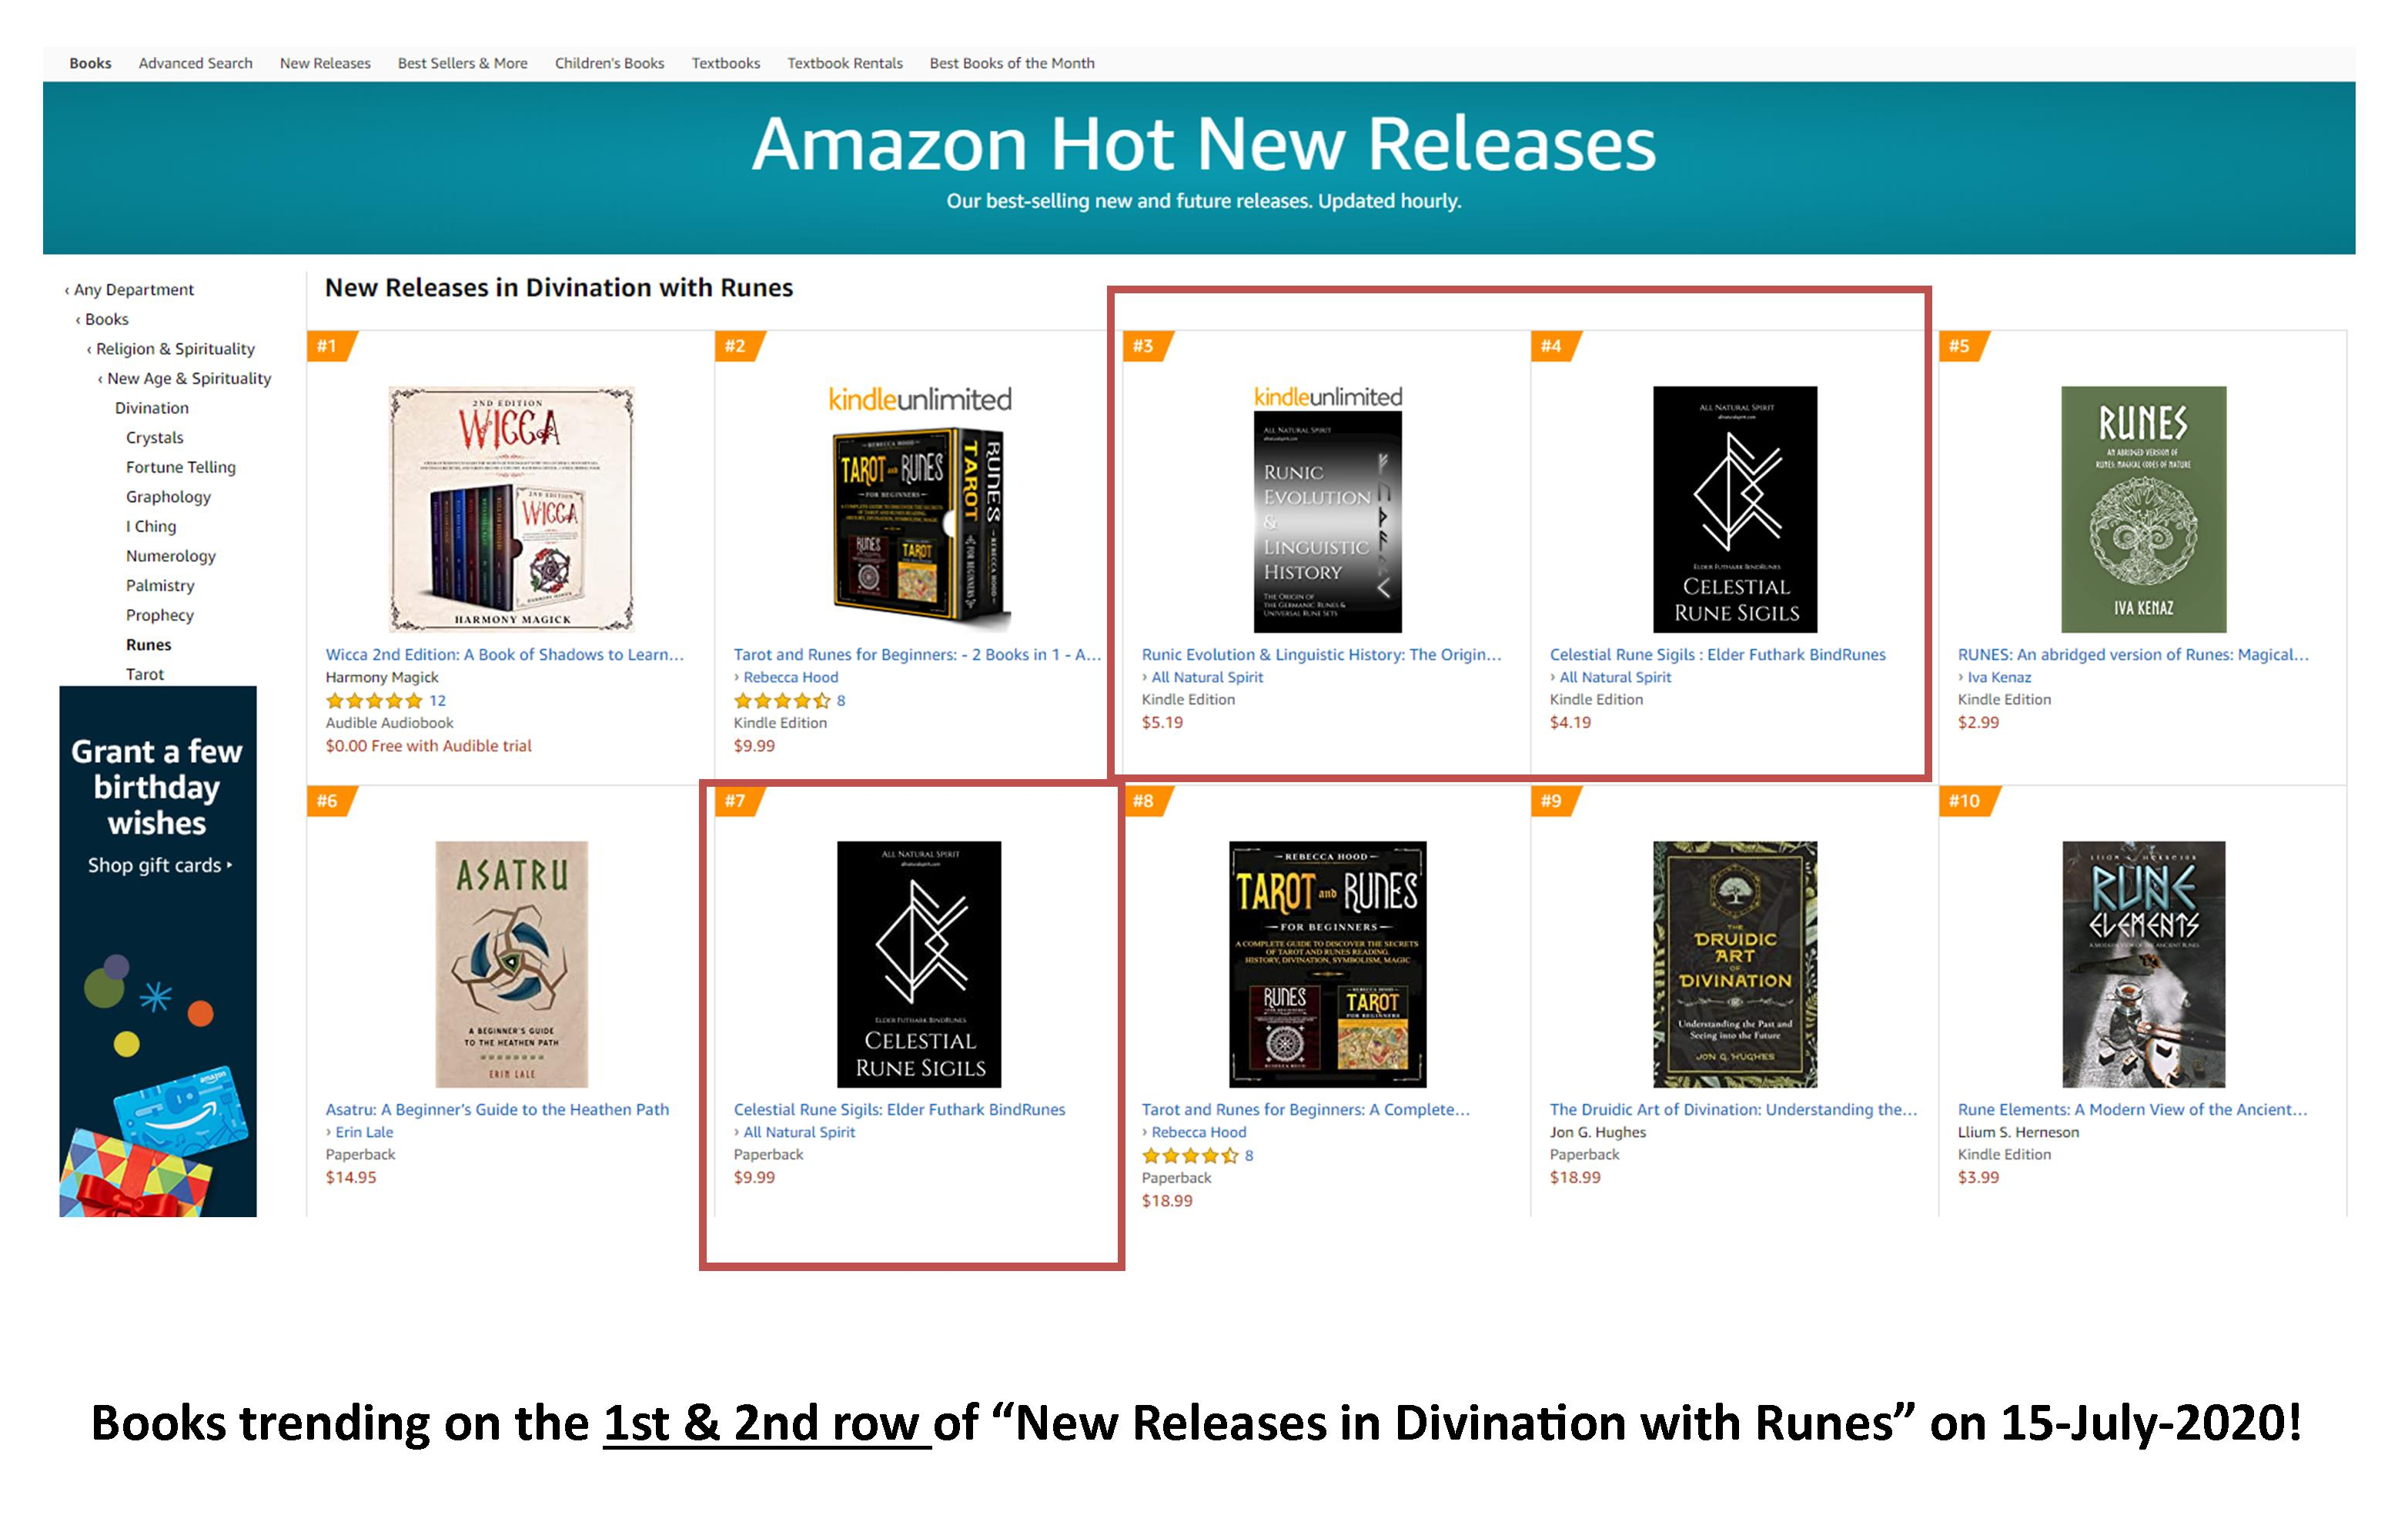 Top 10, Hot New Releases, Amazon, Divination with Runes, eBook, Kindle, Paperback, Runic Evolution and Linguistic History, Celestial Rune Sigils, Elder Futhark Bind Runes